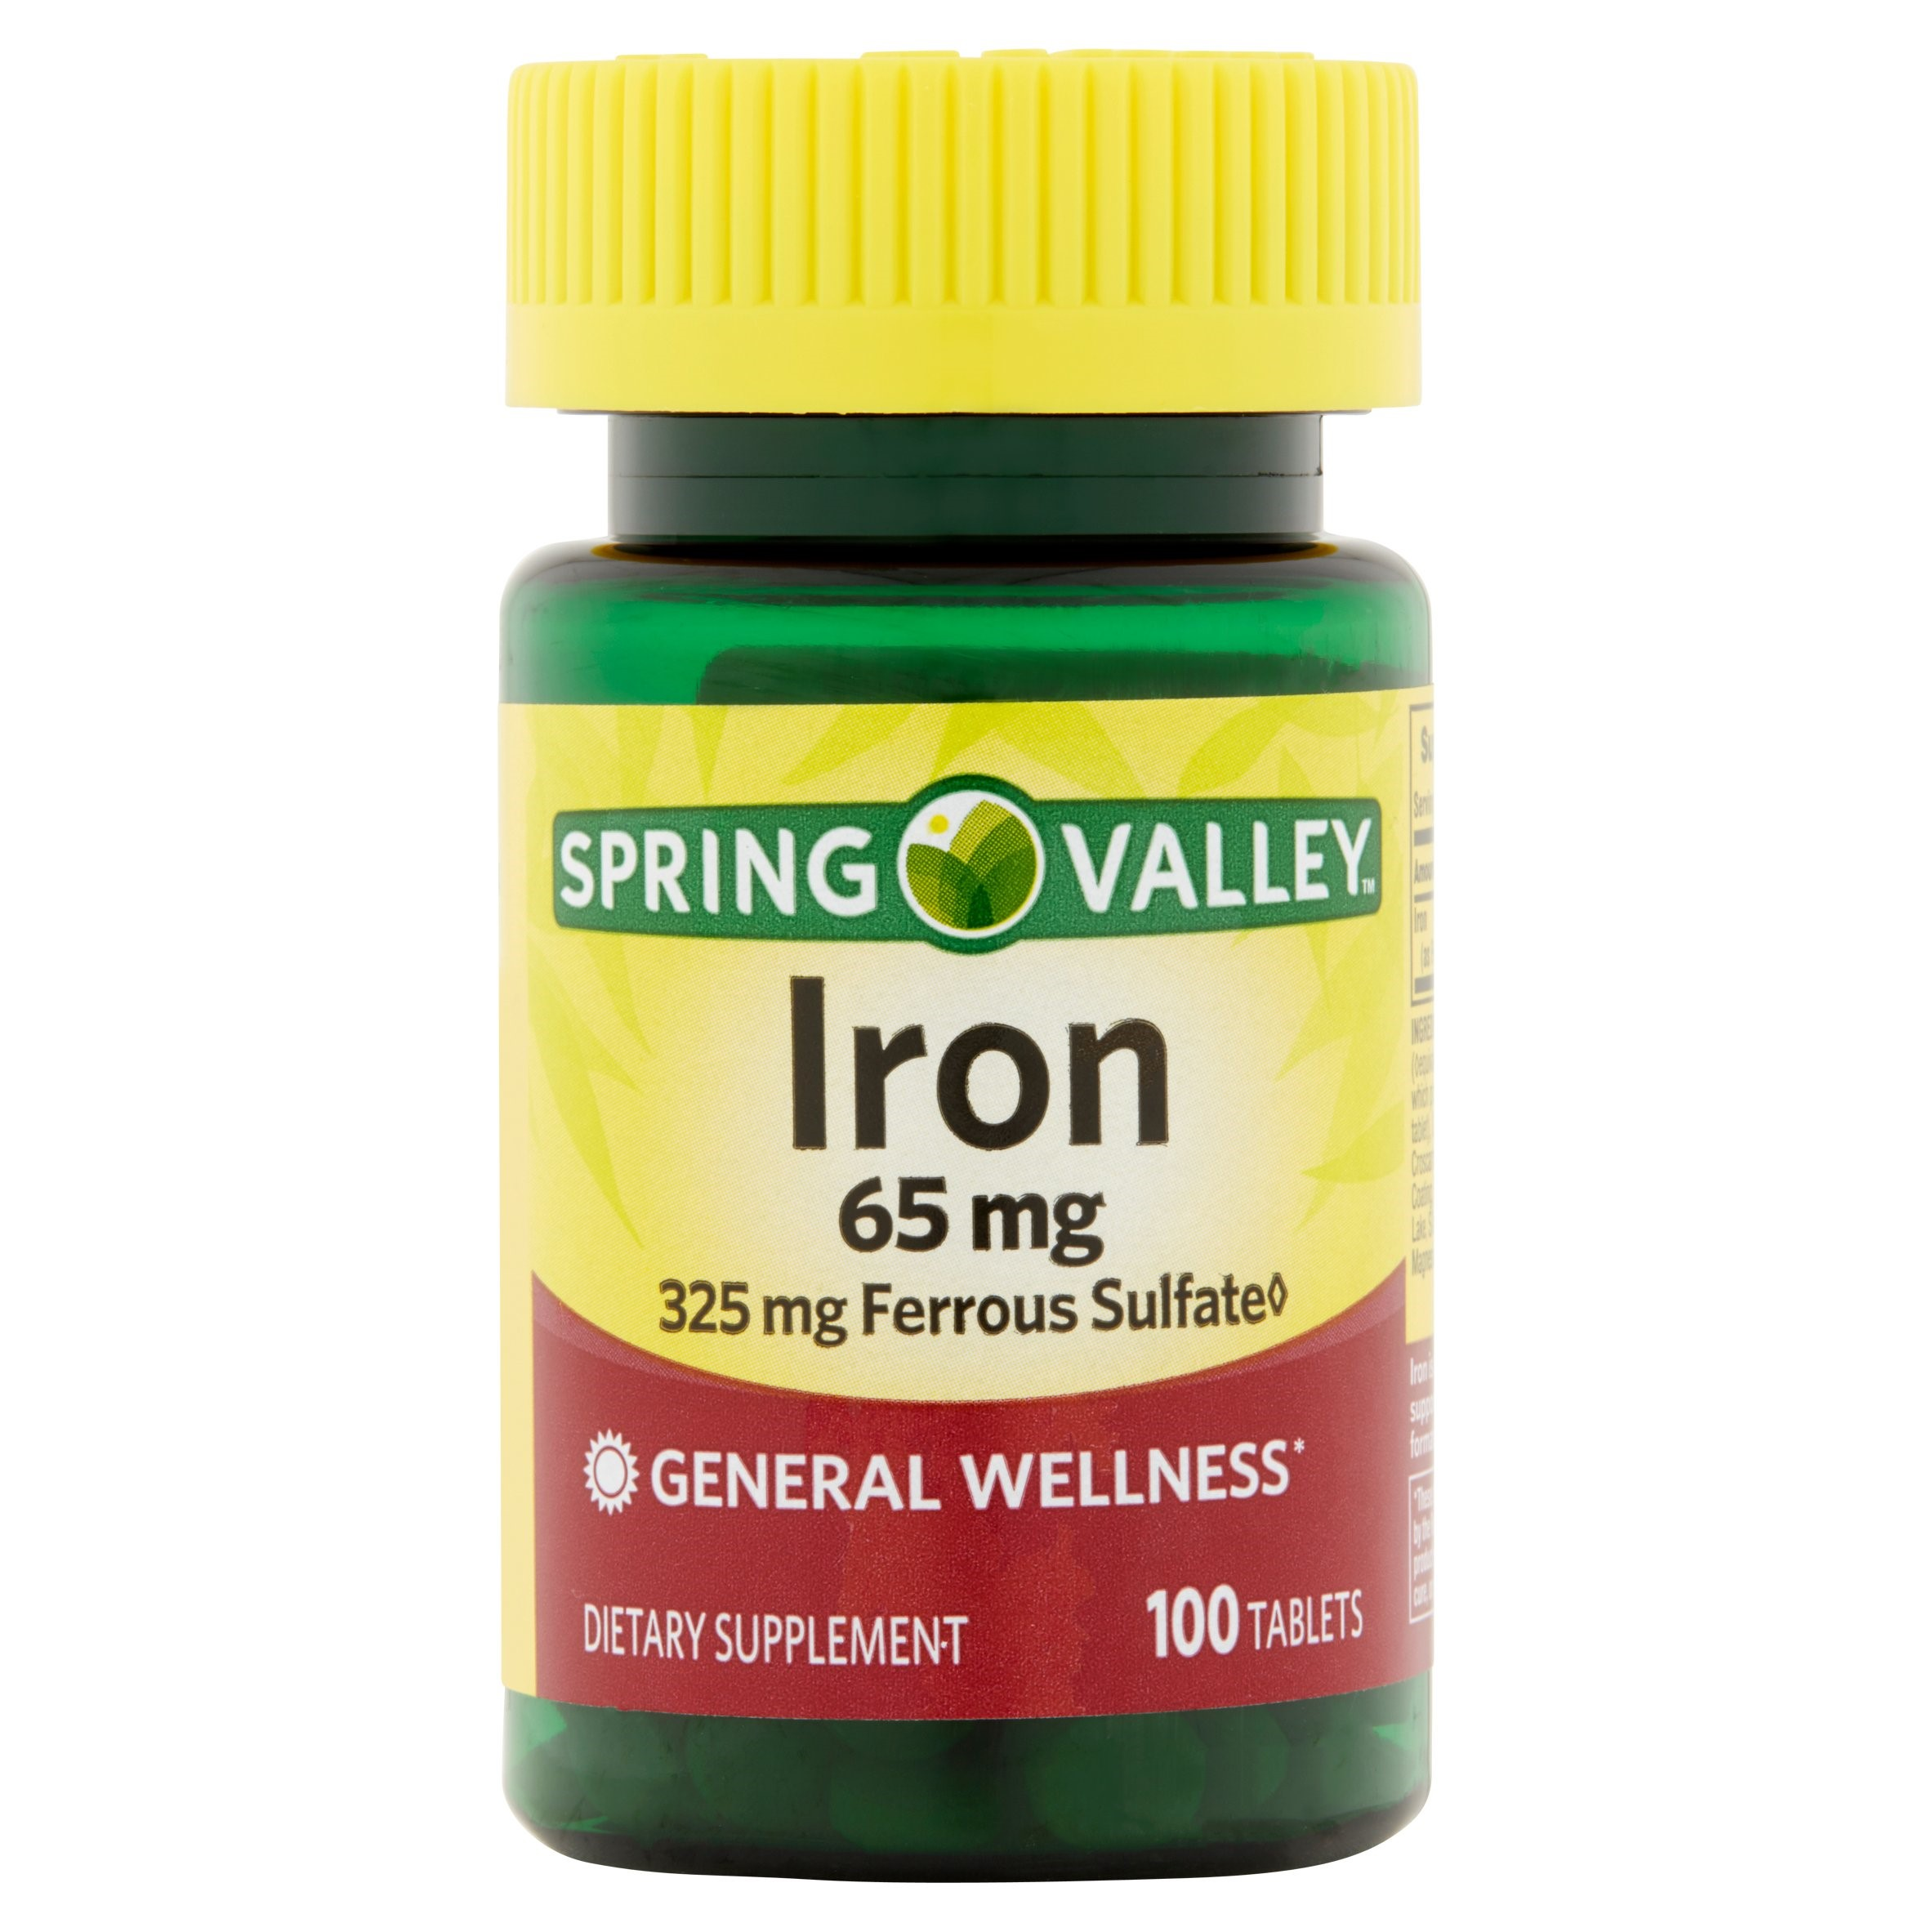 Spring Valley Iron Supplement Tablets, 65 mg, 100 Ct